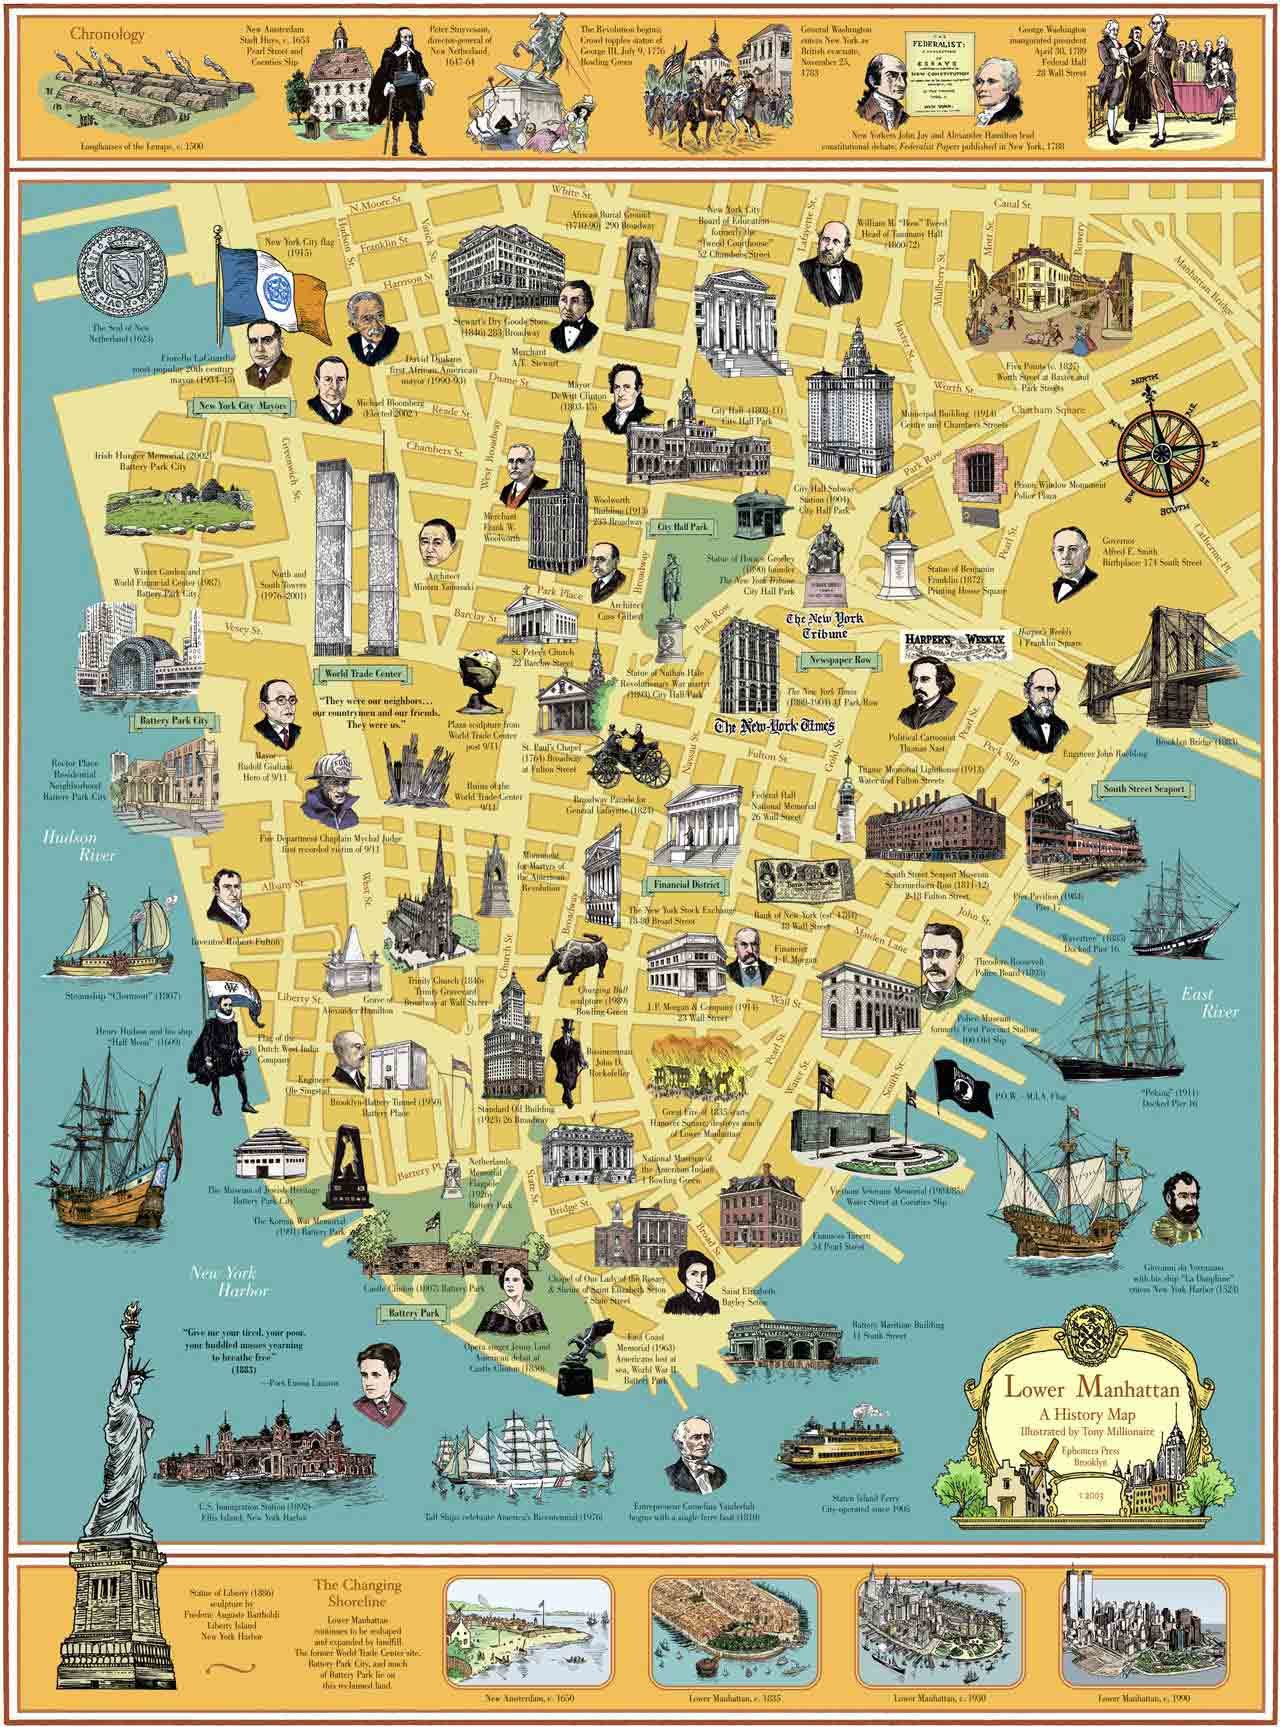 Lower Manhattan: A History Map - Ephemera Press